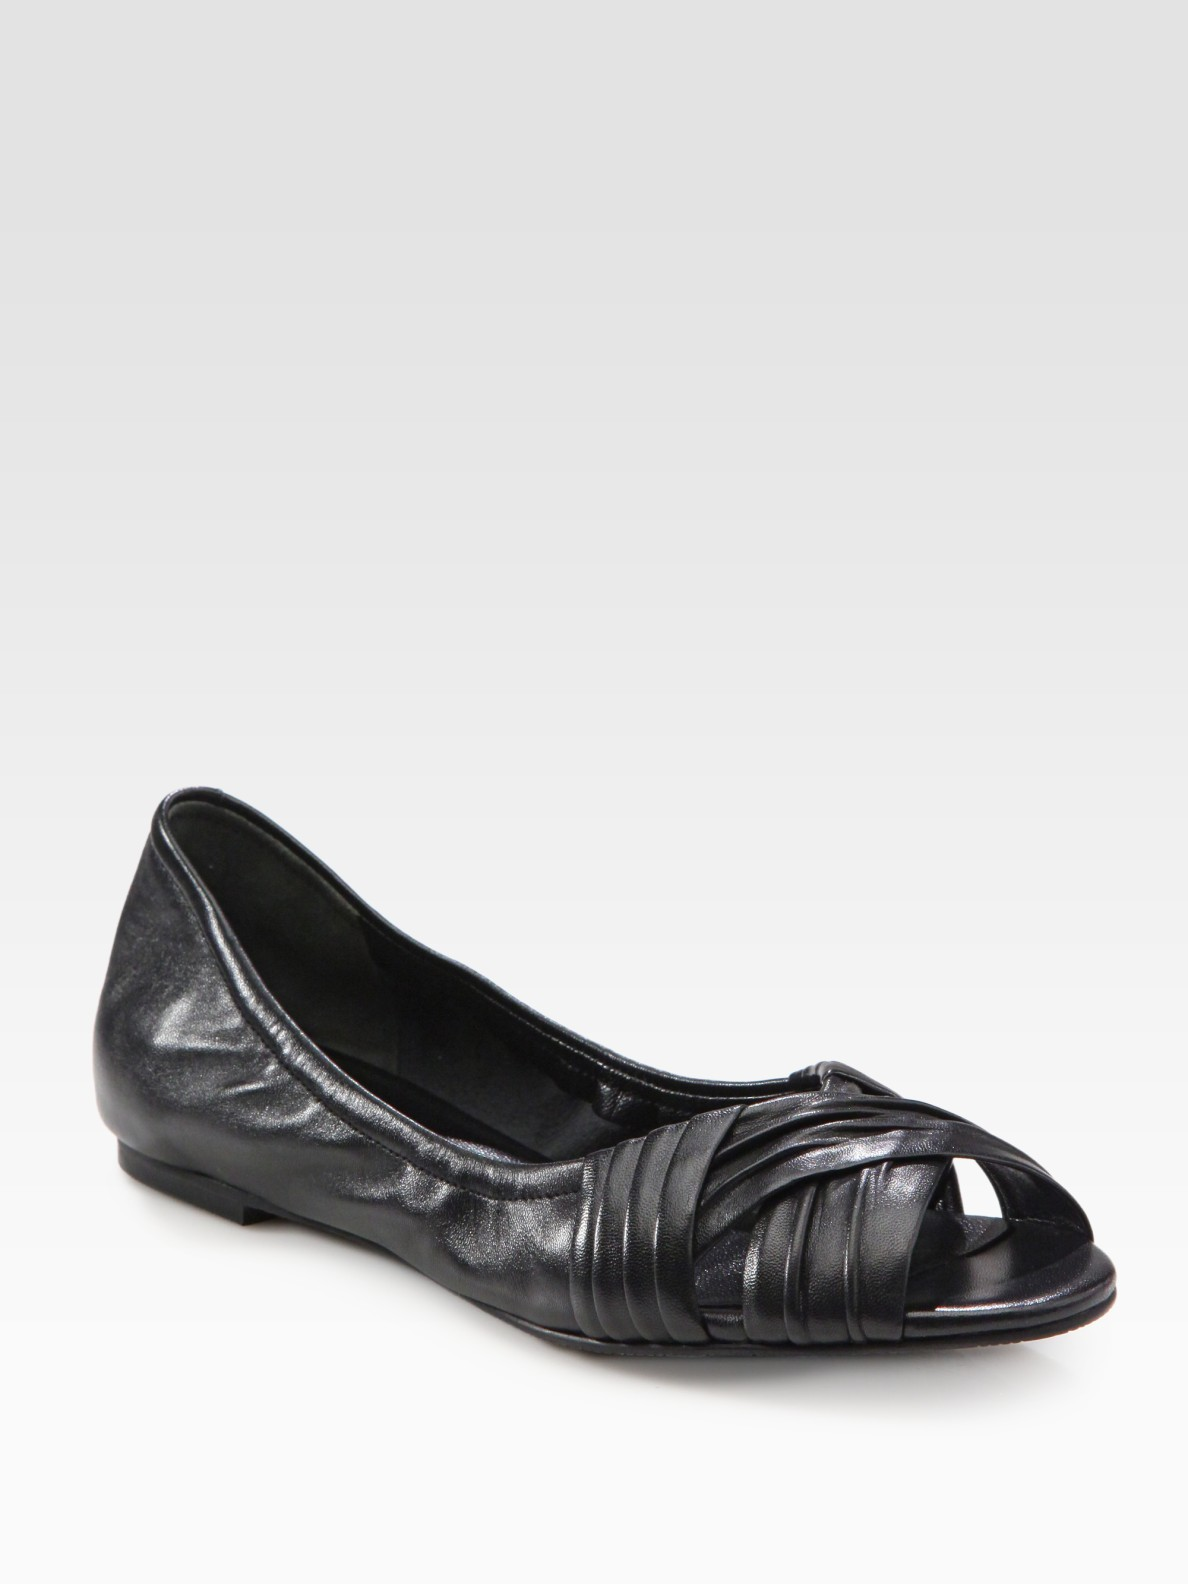 Lyst Cole Haan Air Nadine Leather Peep Toe Ballet Flats